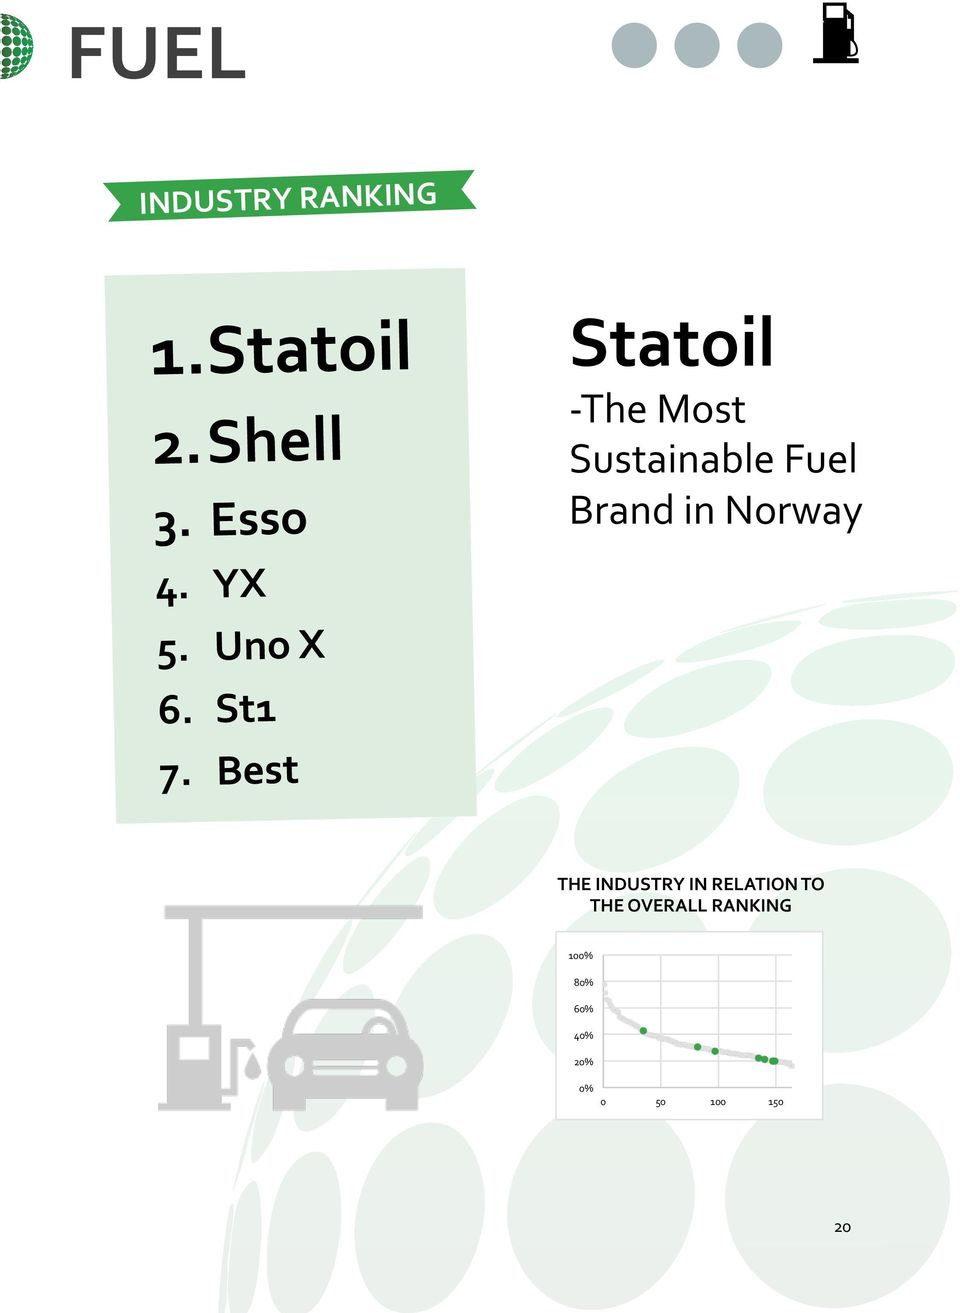 Best Statoil - The Most Sustainable Fuel Brand in